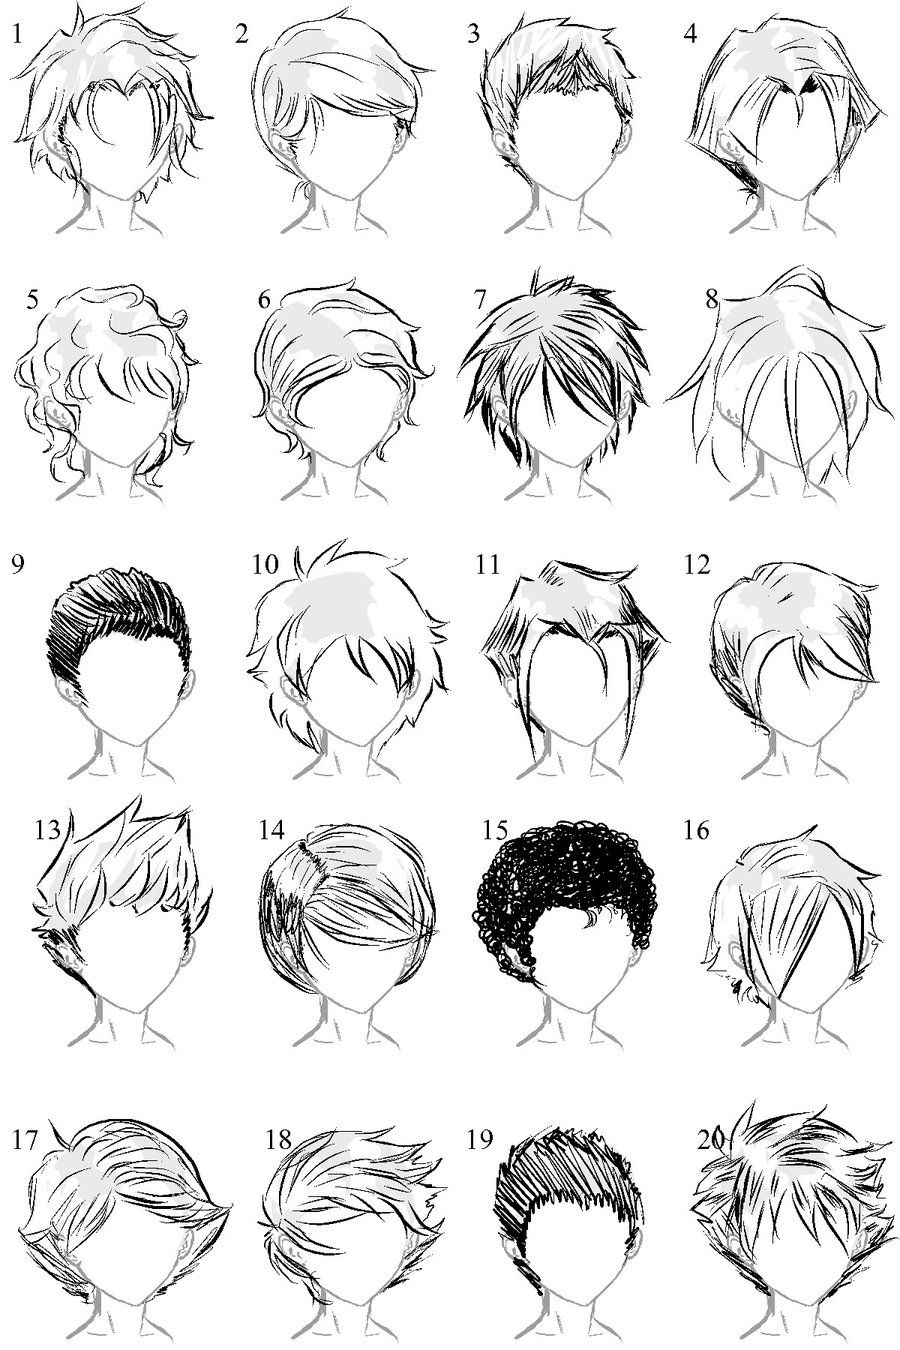 Anime Boy Hairstyles Sketch